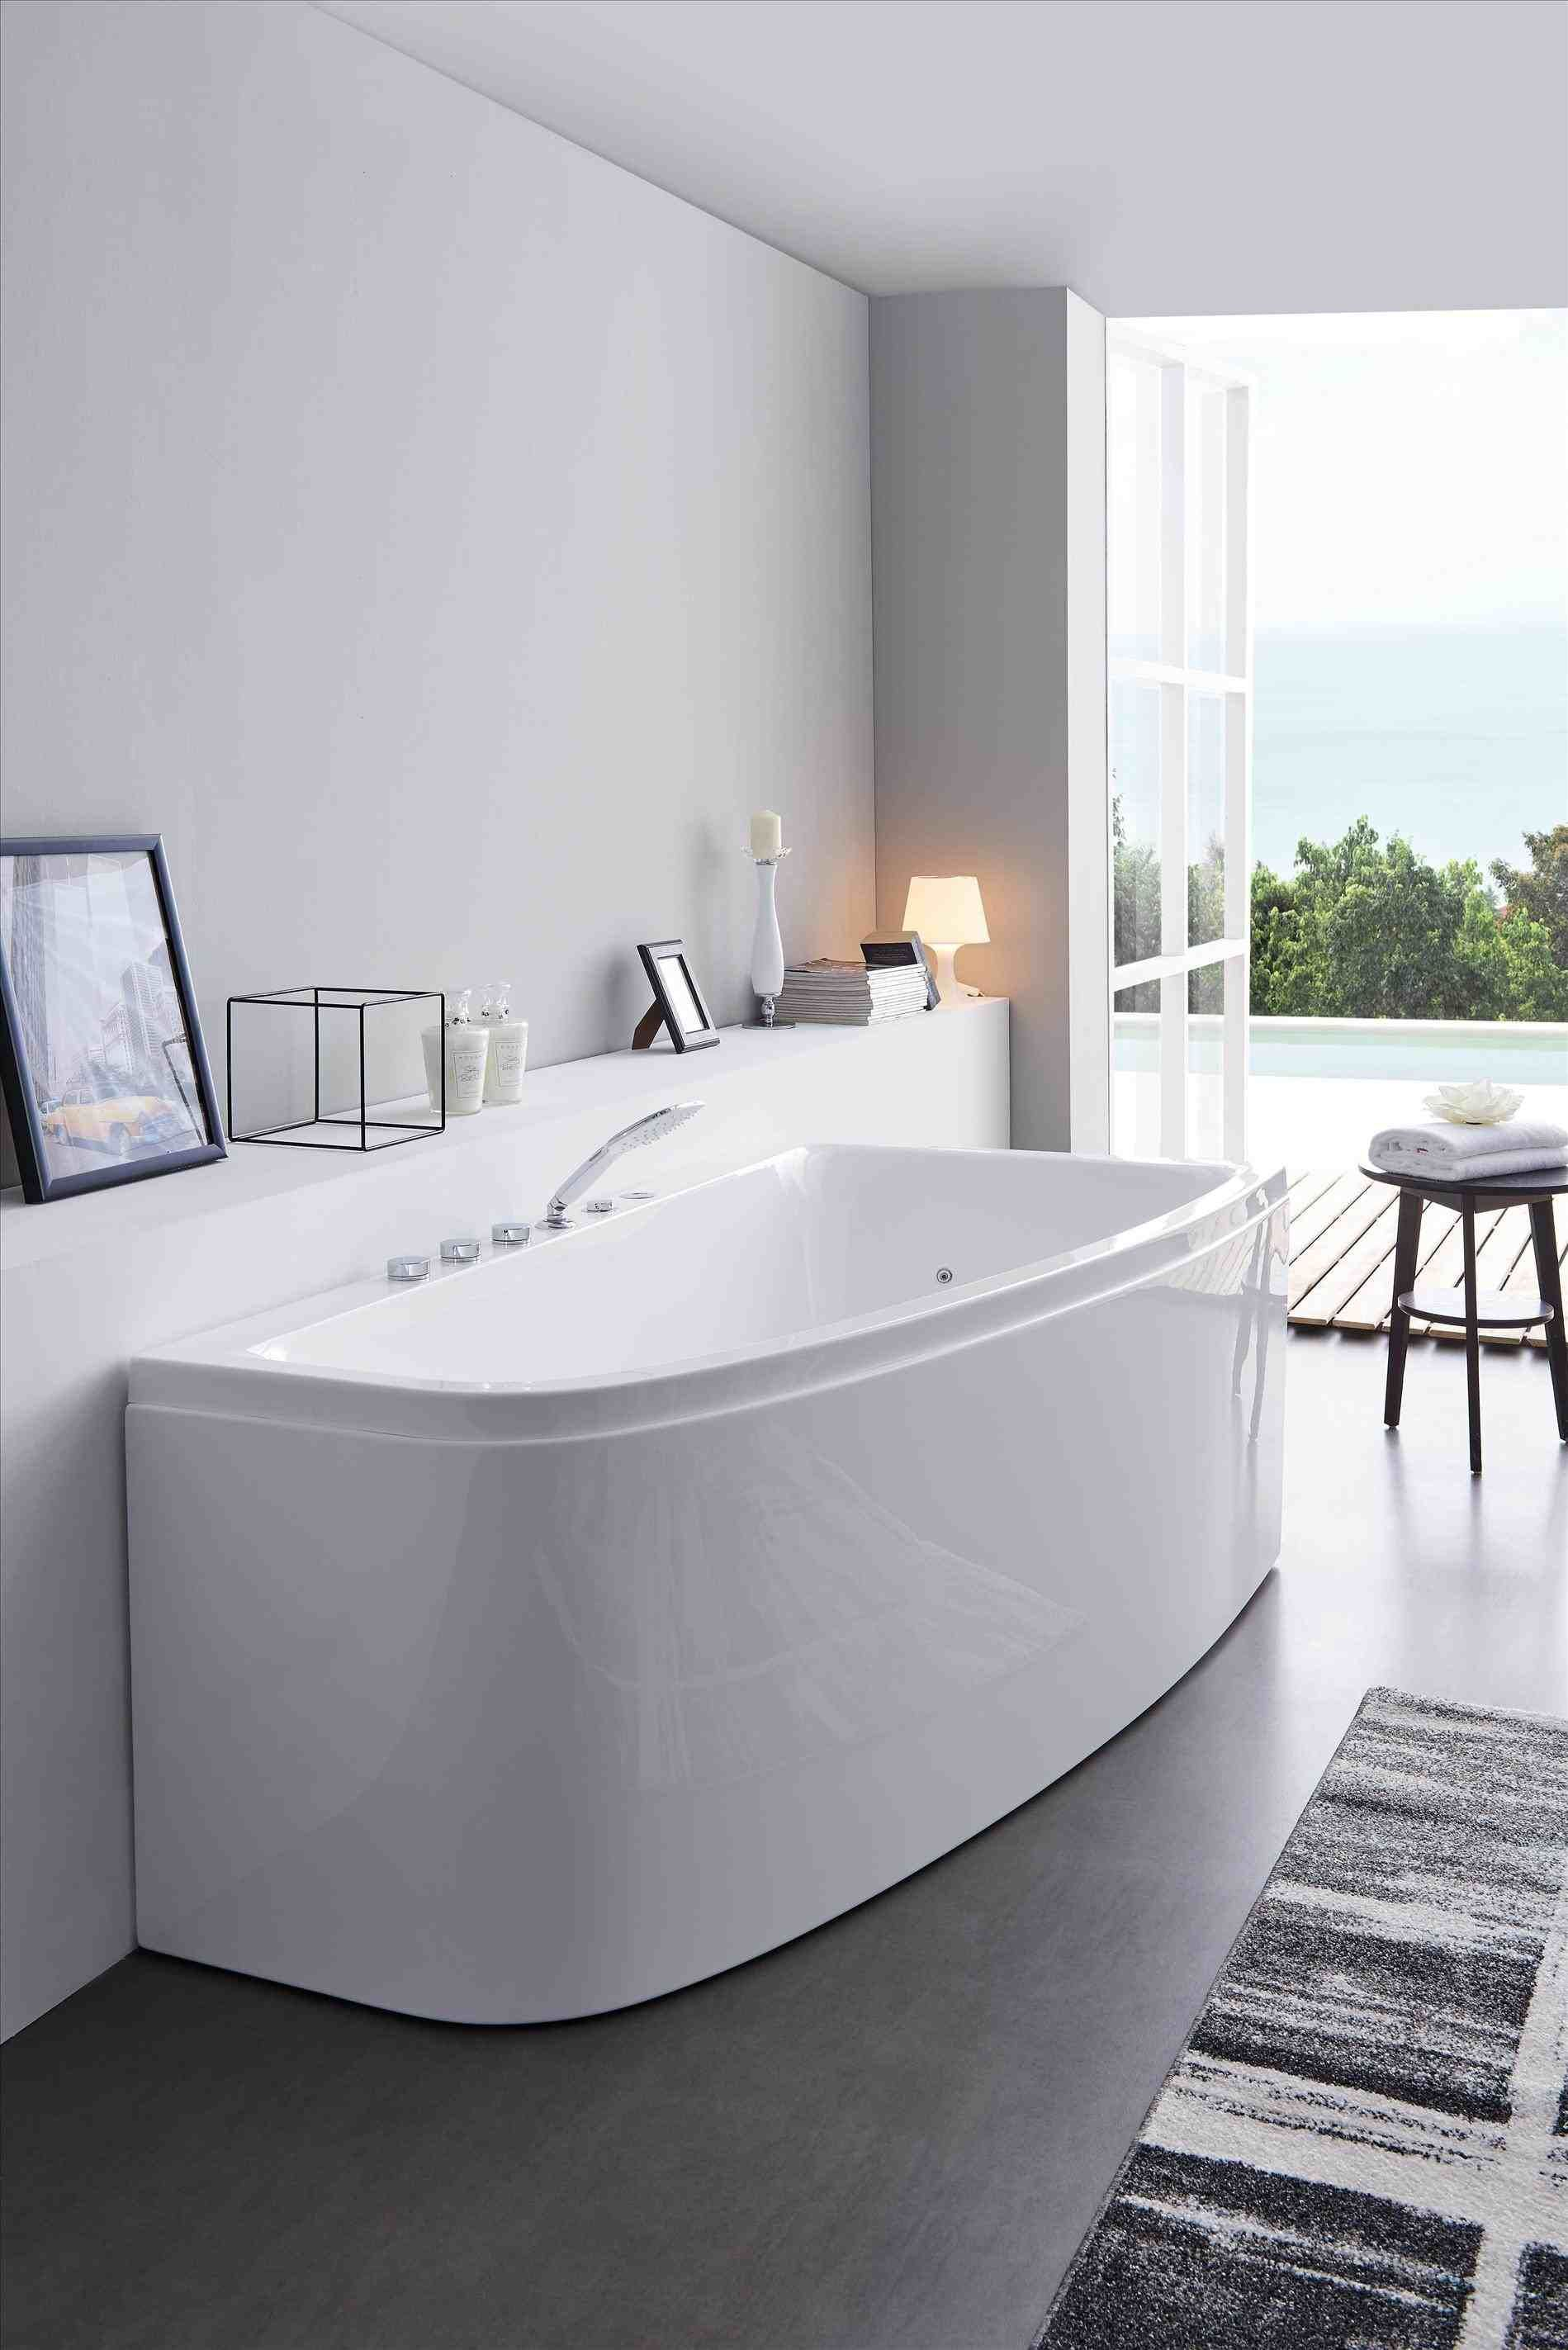 New Post Bathtub Jacuzzi Visit Bathroomremodelideassclub